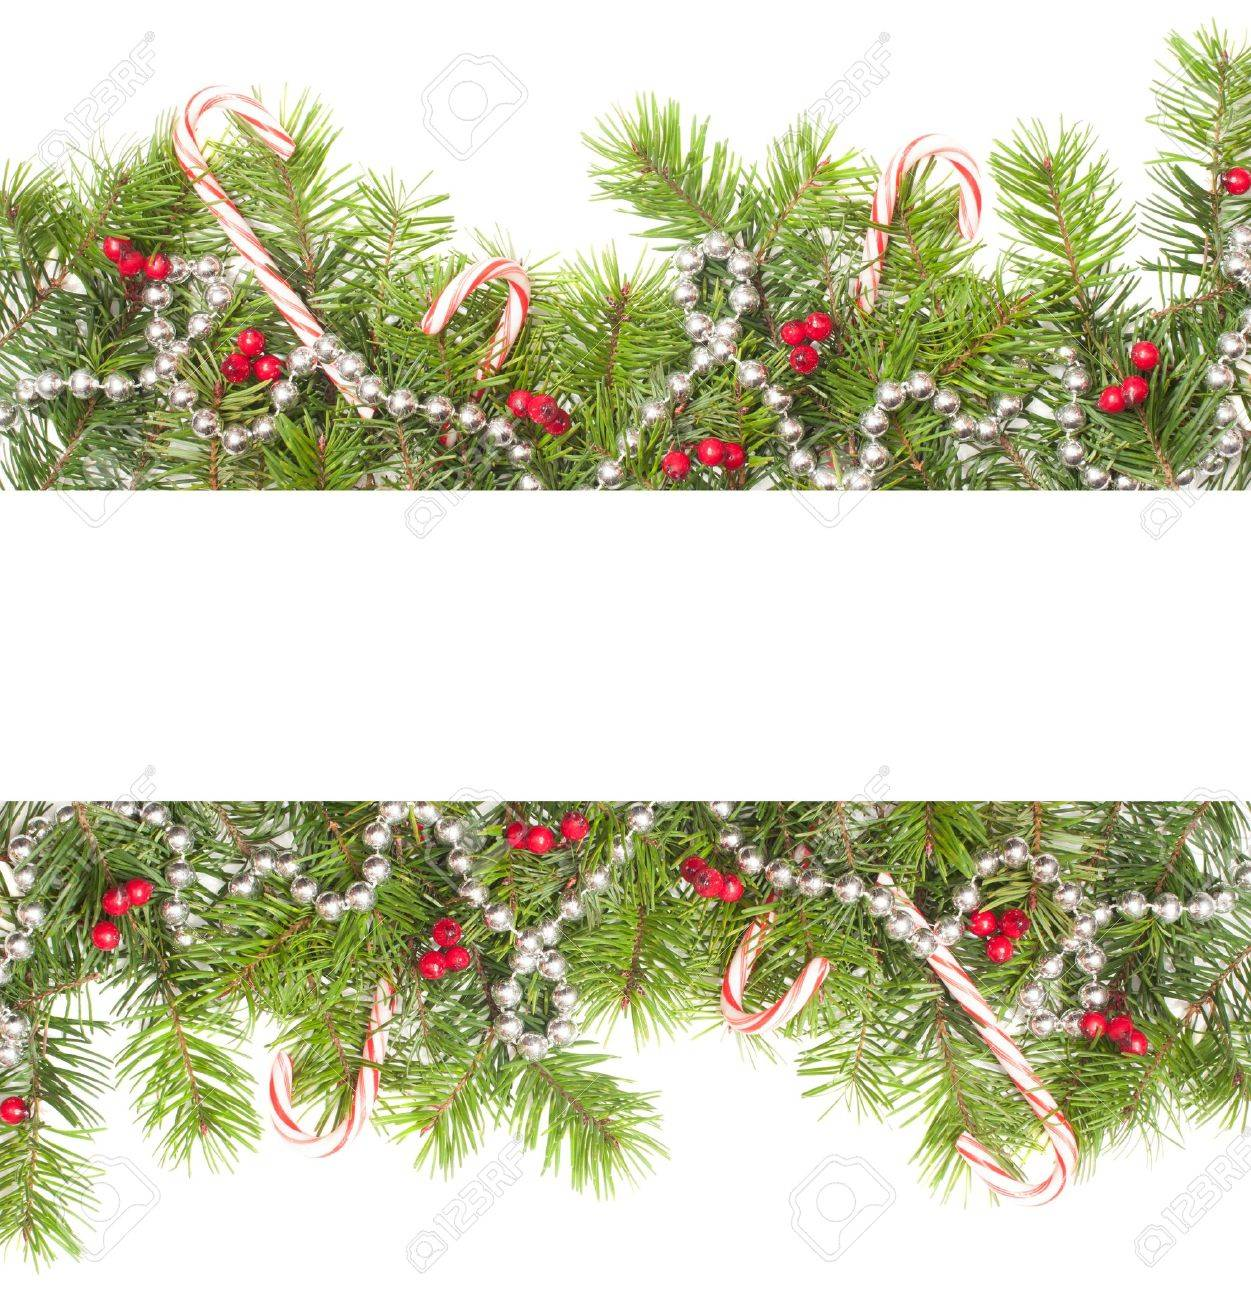 Christmas border with candy canes on a white background Stock Photo - 13956041